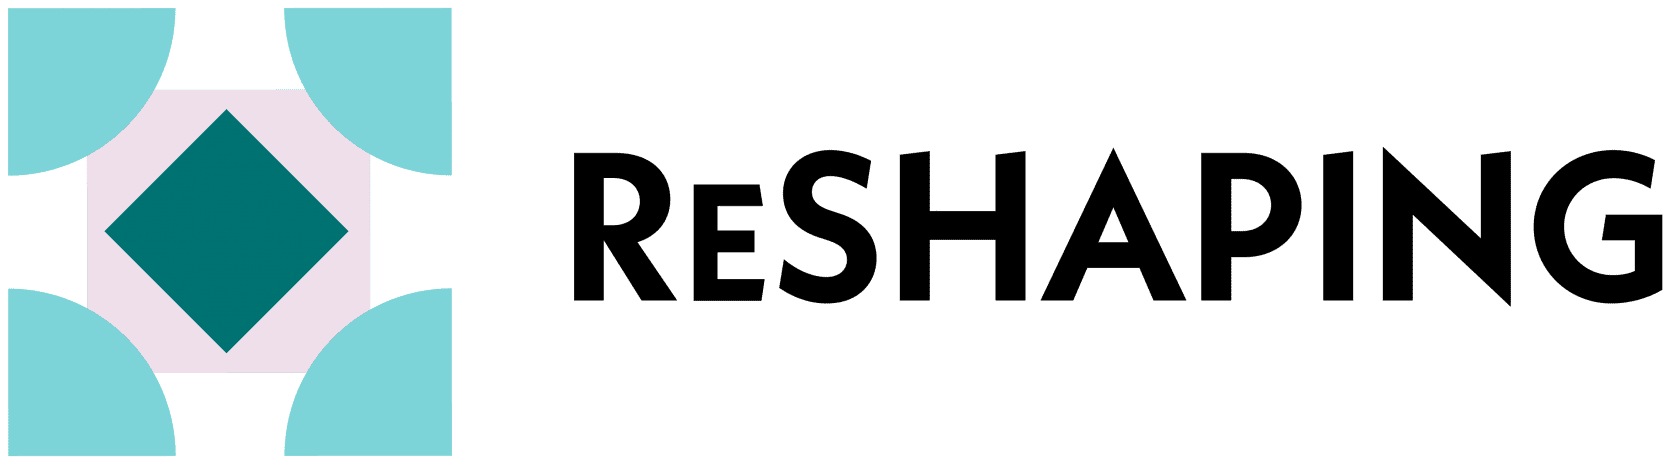 ReSHAPING Logo- text side